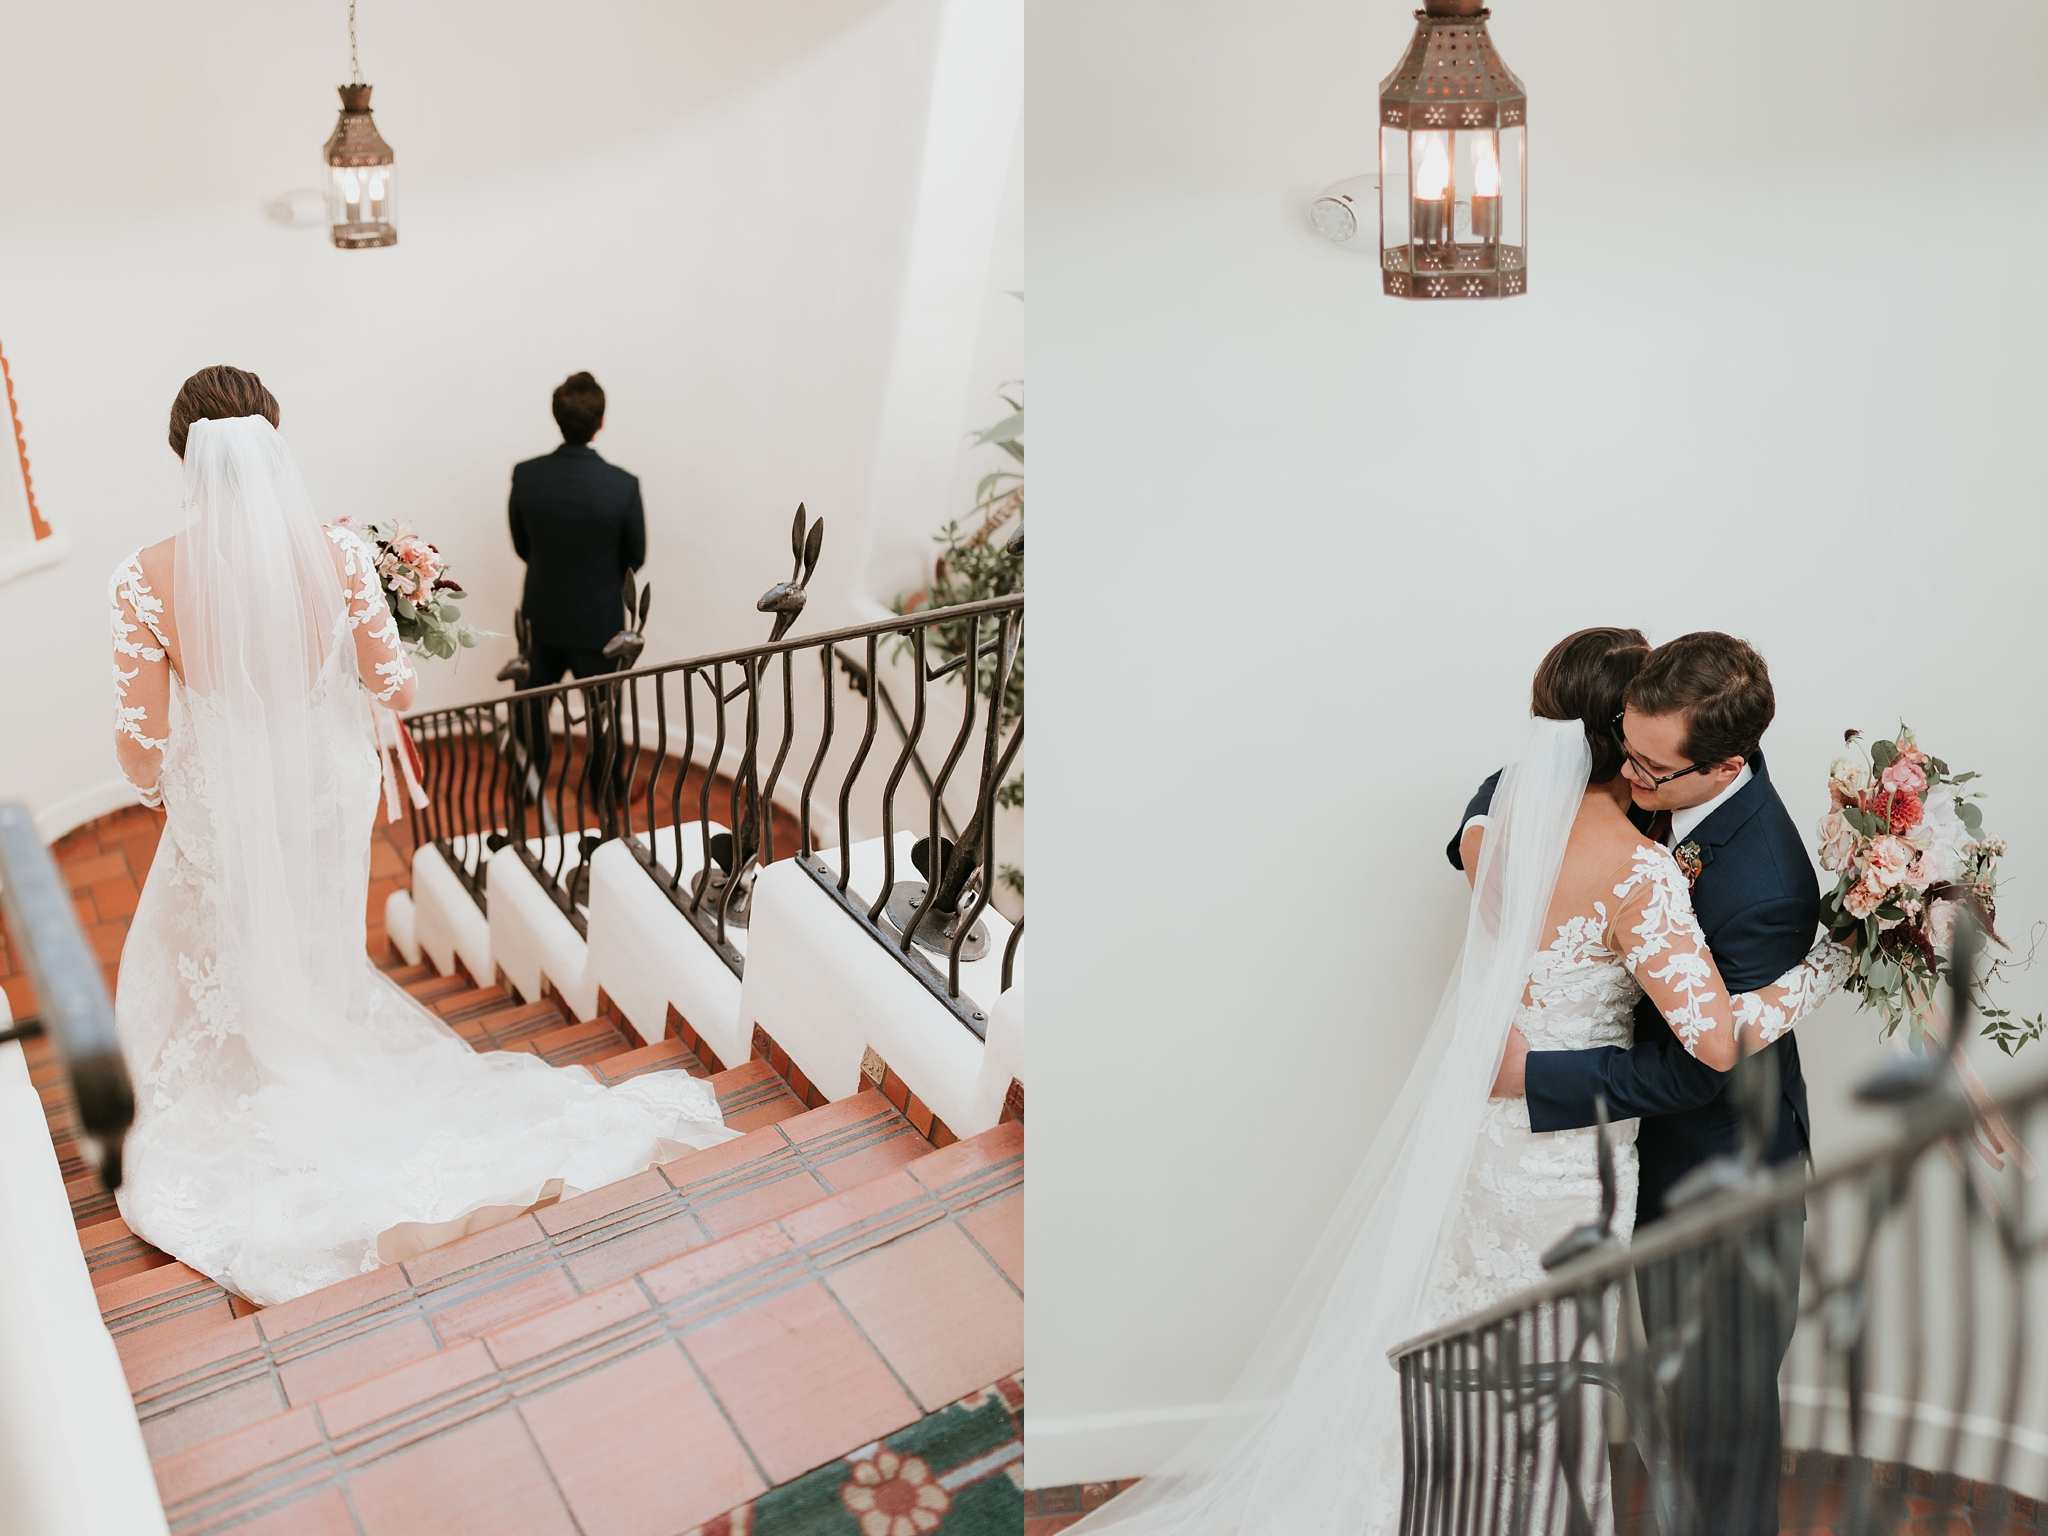 Alicia+lucia+photography+-+albuquerque+wedding+photographer+-+santa+fe+wedding+photography+-+new+mexico+wedding+photographer+-+new+mexico+wedding+-+engagement+-+santa+fe+wedding+-+la+fonda+on+the+plaza+-+la+fonda+wedding_0005.jpg